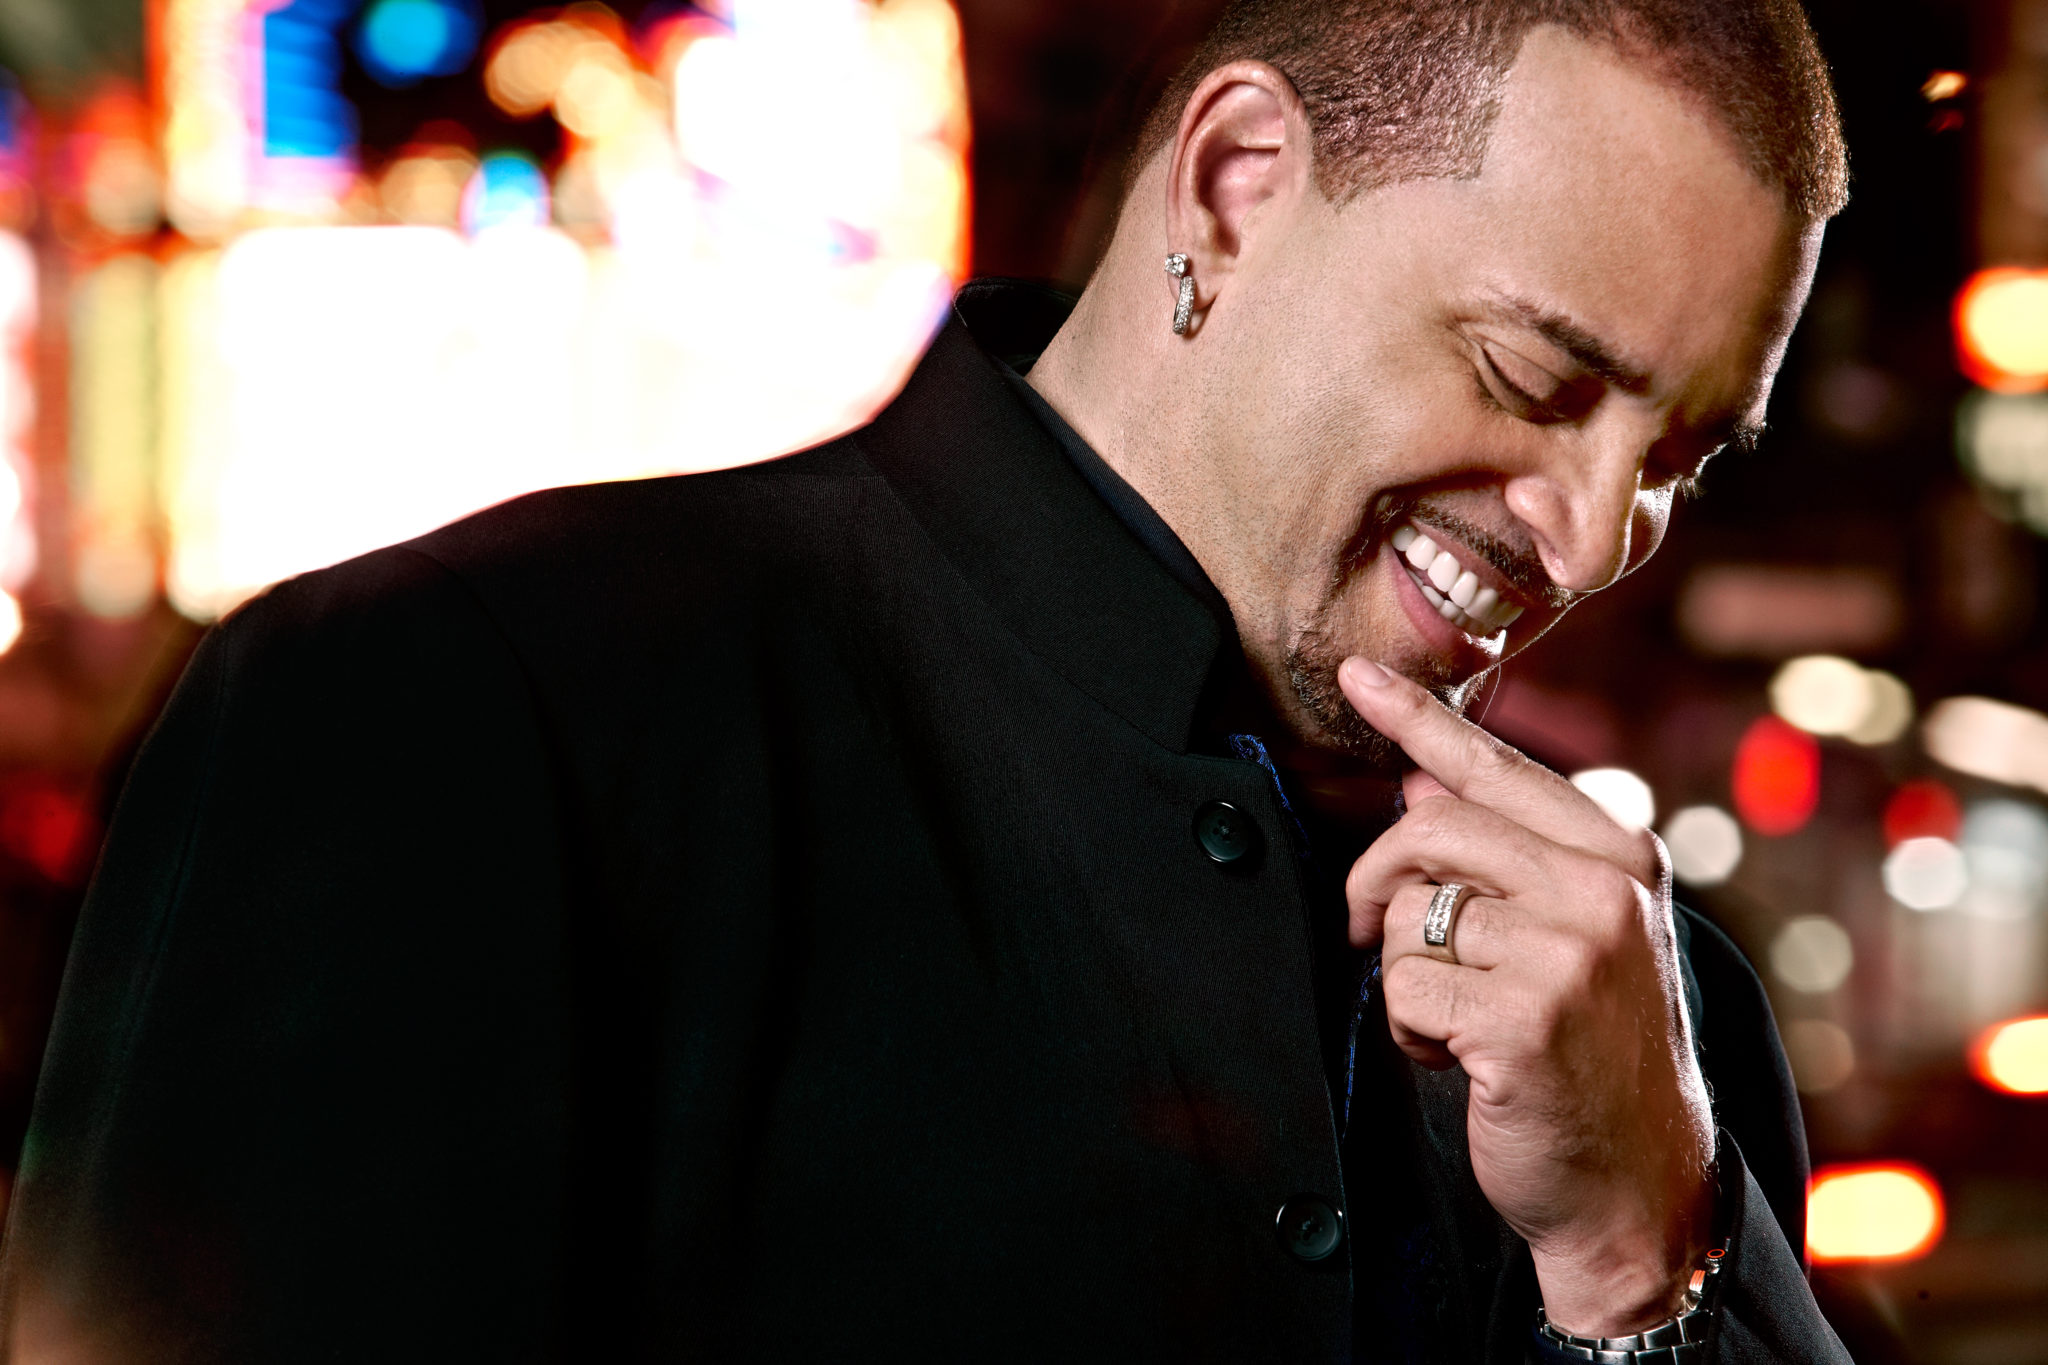 Sinbad: An Evening of Comedy